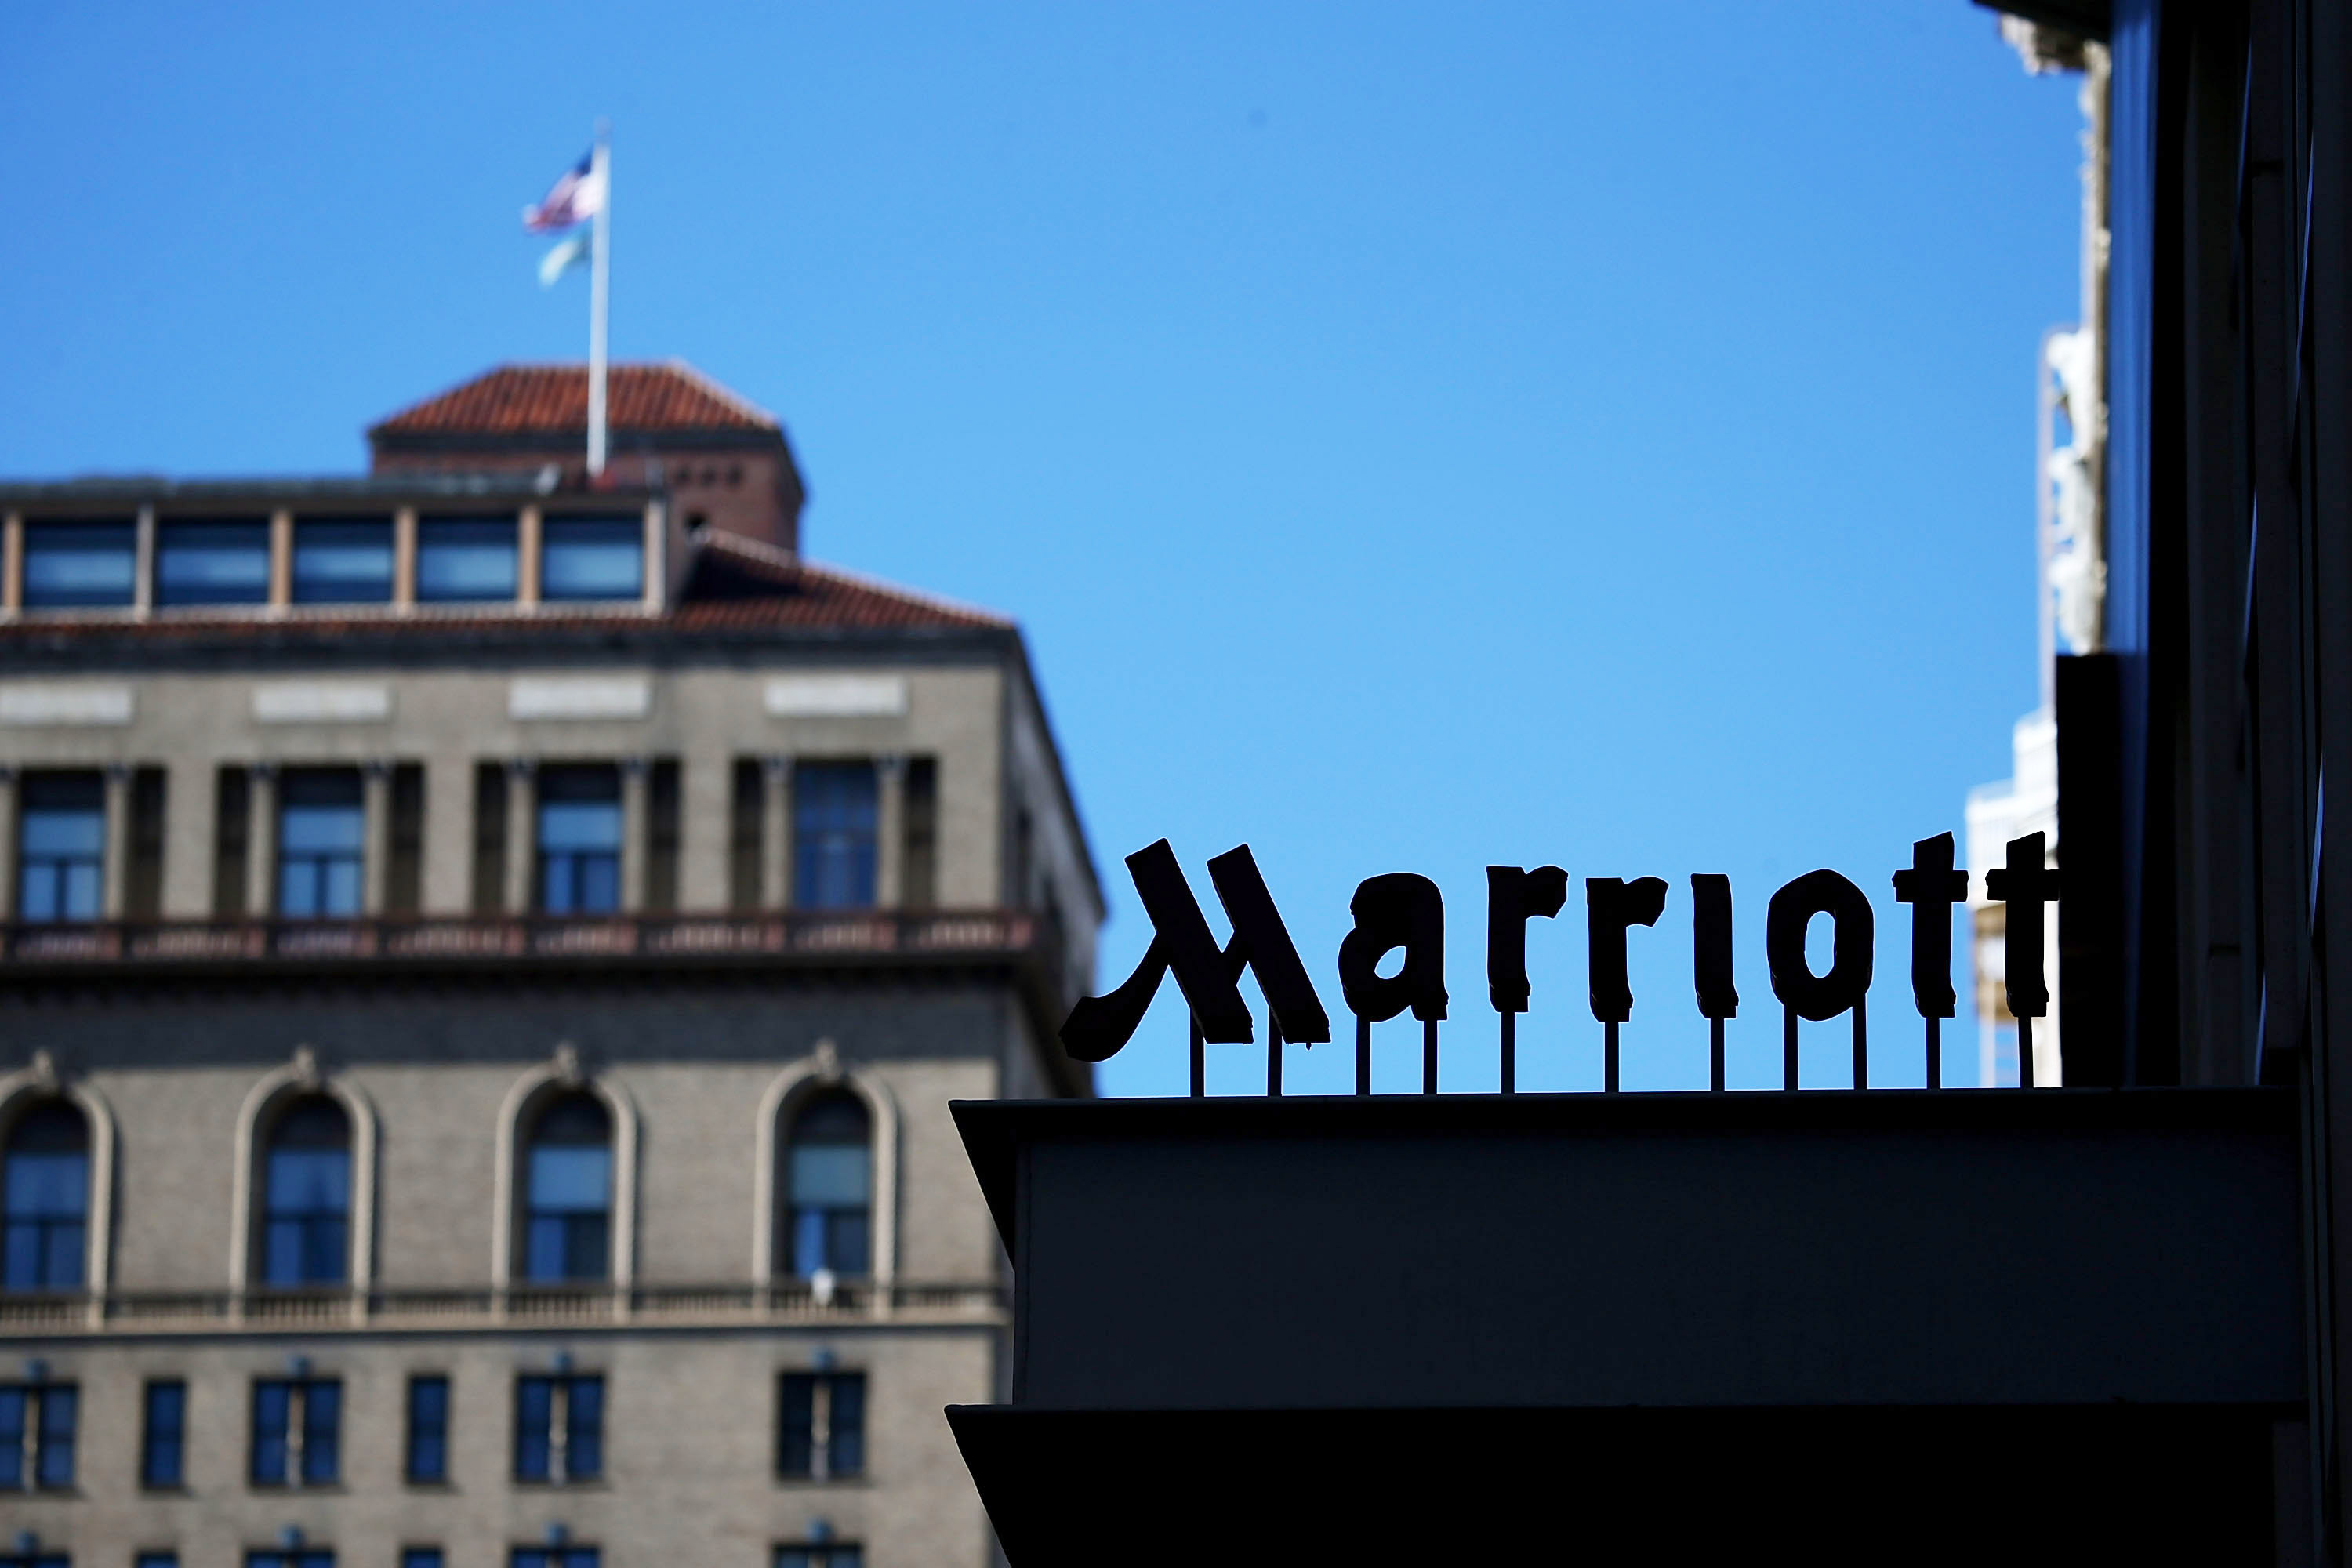 36b3977dc0 Marriott reveals massive database breach affecting up to 500 million hotel  guests - The Verge